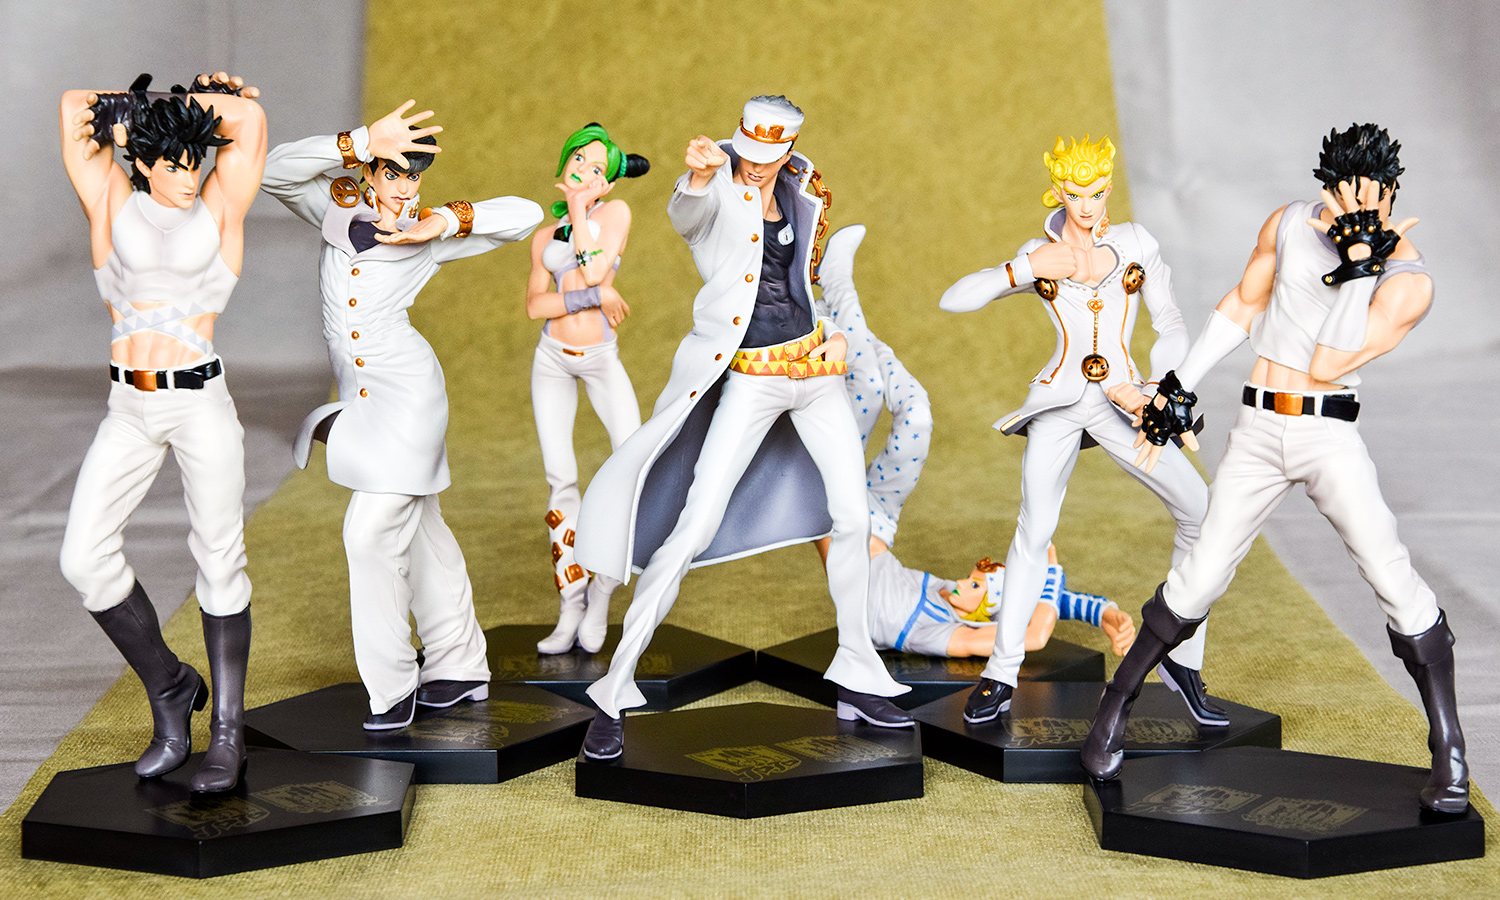 banpresto ichiban_kuji jojo_no_kimyou_na_bouken kuujou_joutarou jonathan_joestar joseph_joestar higashikata_josuke giorno_giovanna jolyne_cujoh johnny_joestar stardust_crusaders battle_tendency phantom_blood vento_aureo ichiban_kuji_jojo_no_kimyou_na_bouken_anniversaries stone_ocean diamond_is_not_crash steel_ball_run